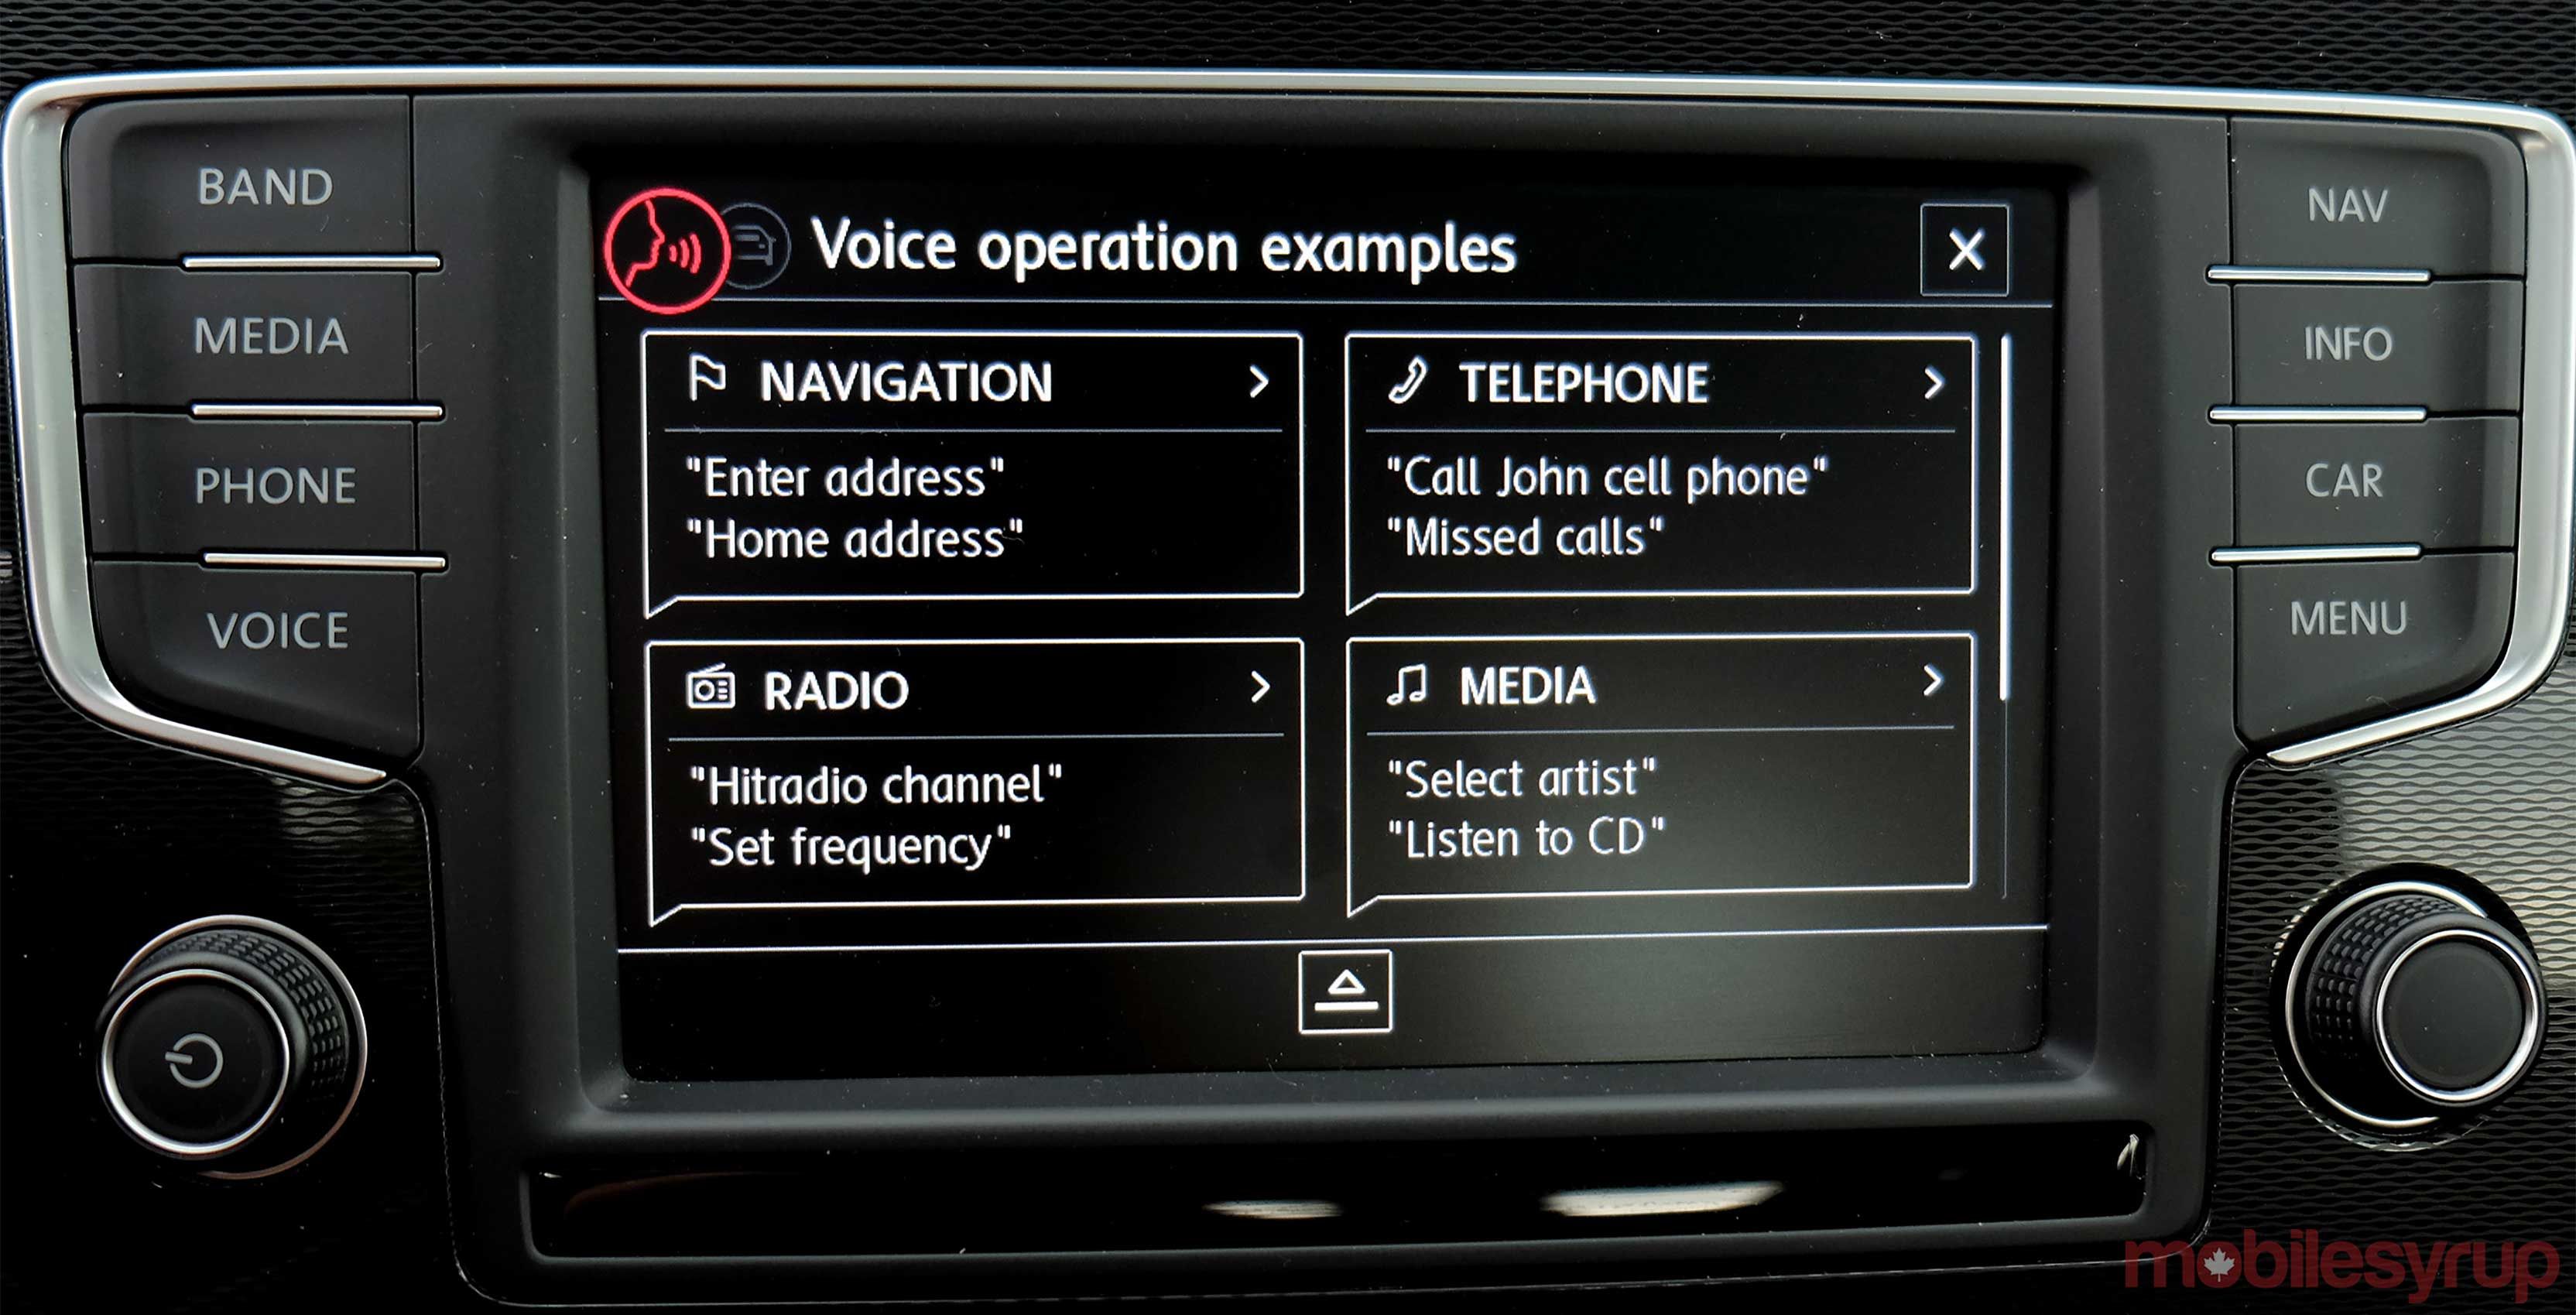 2017 Volkswagen MIB System Review Where The Phone Rules